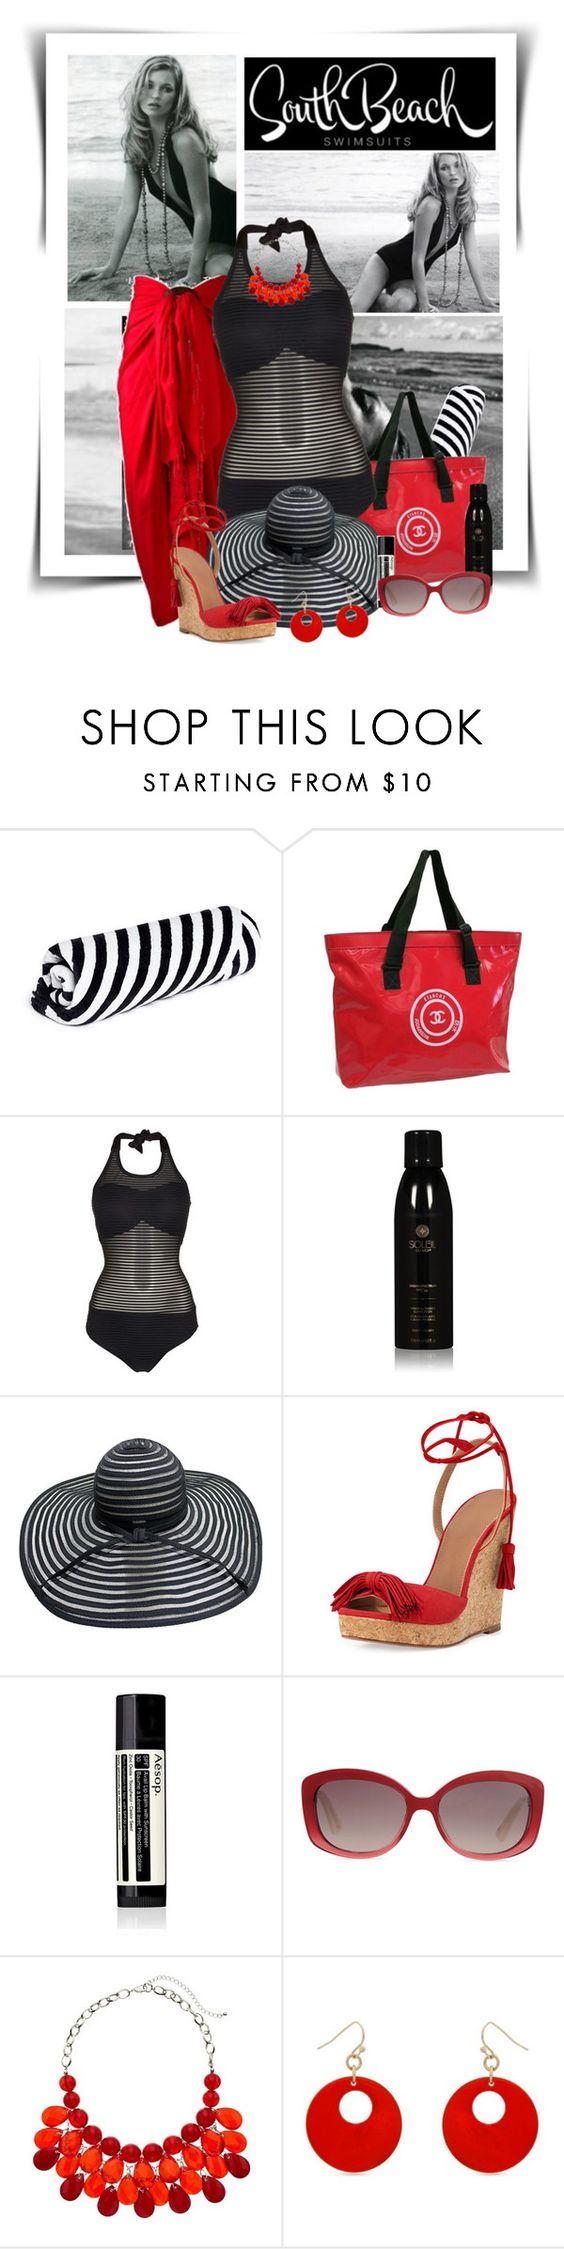 """Beach Fashion"" by diva1023 ❤ liked on Polyvore featuring The Beach People, Chanel, Biba, Soleil Toujours, Aquazzura, Aesop, Christian Dior and Erica Lyons"